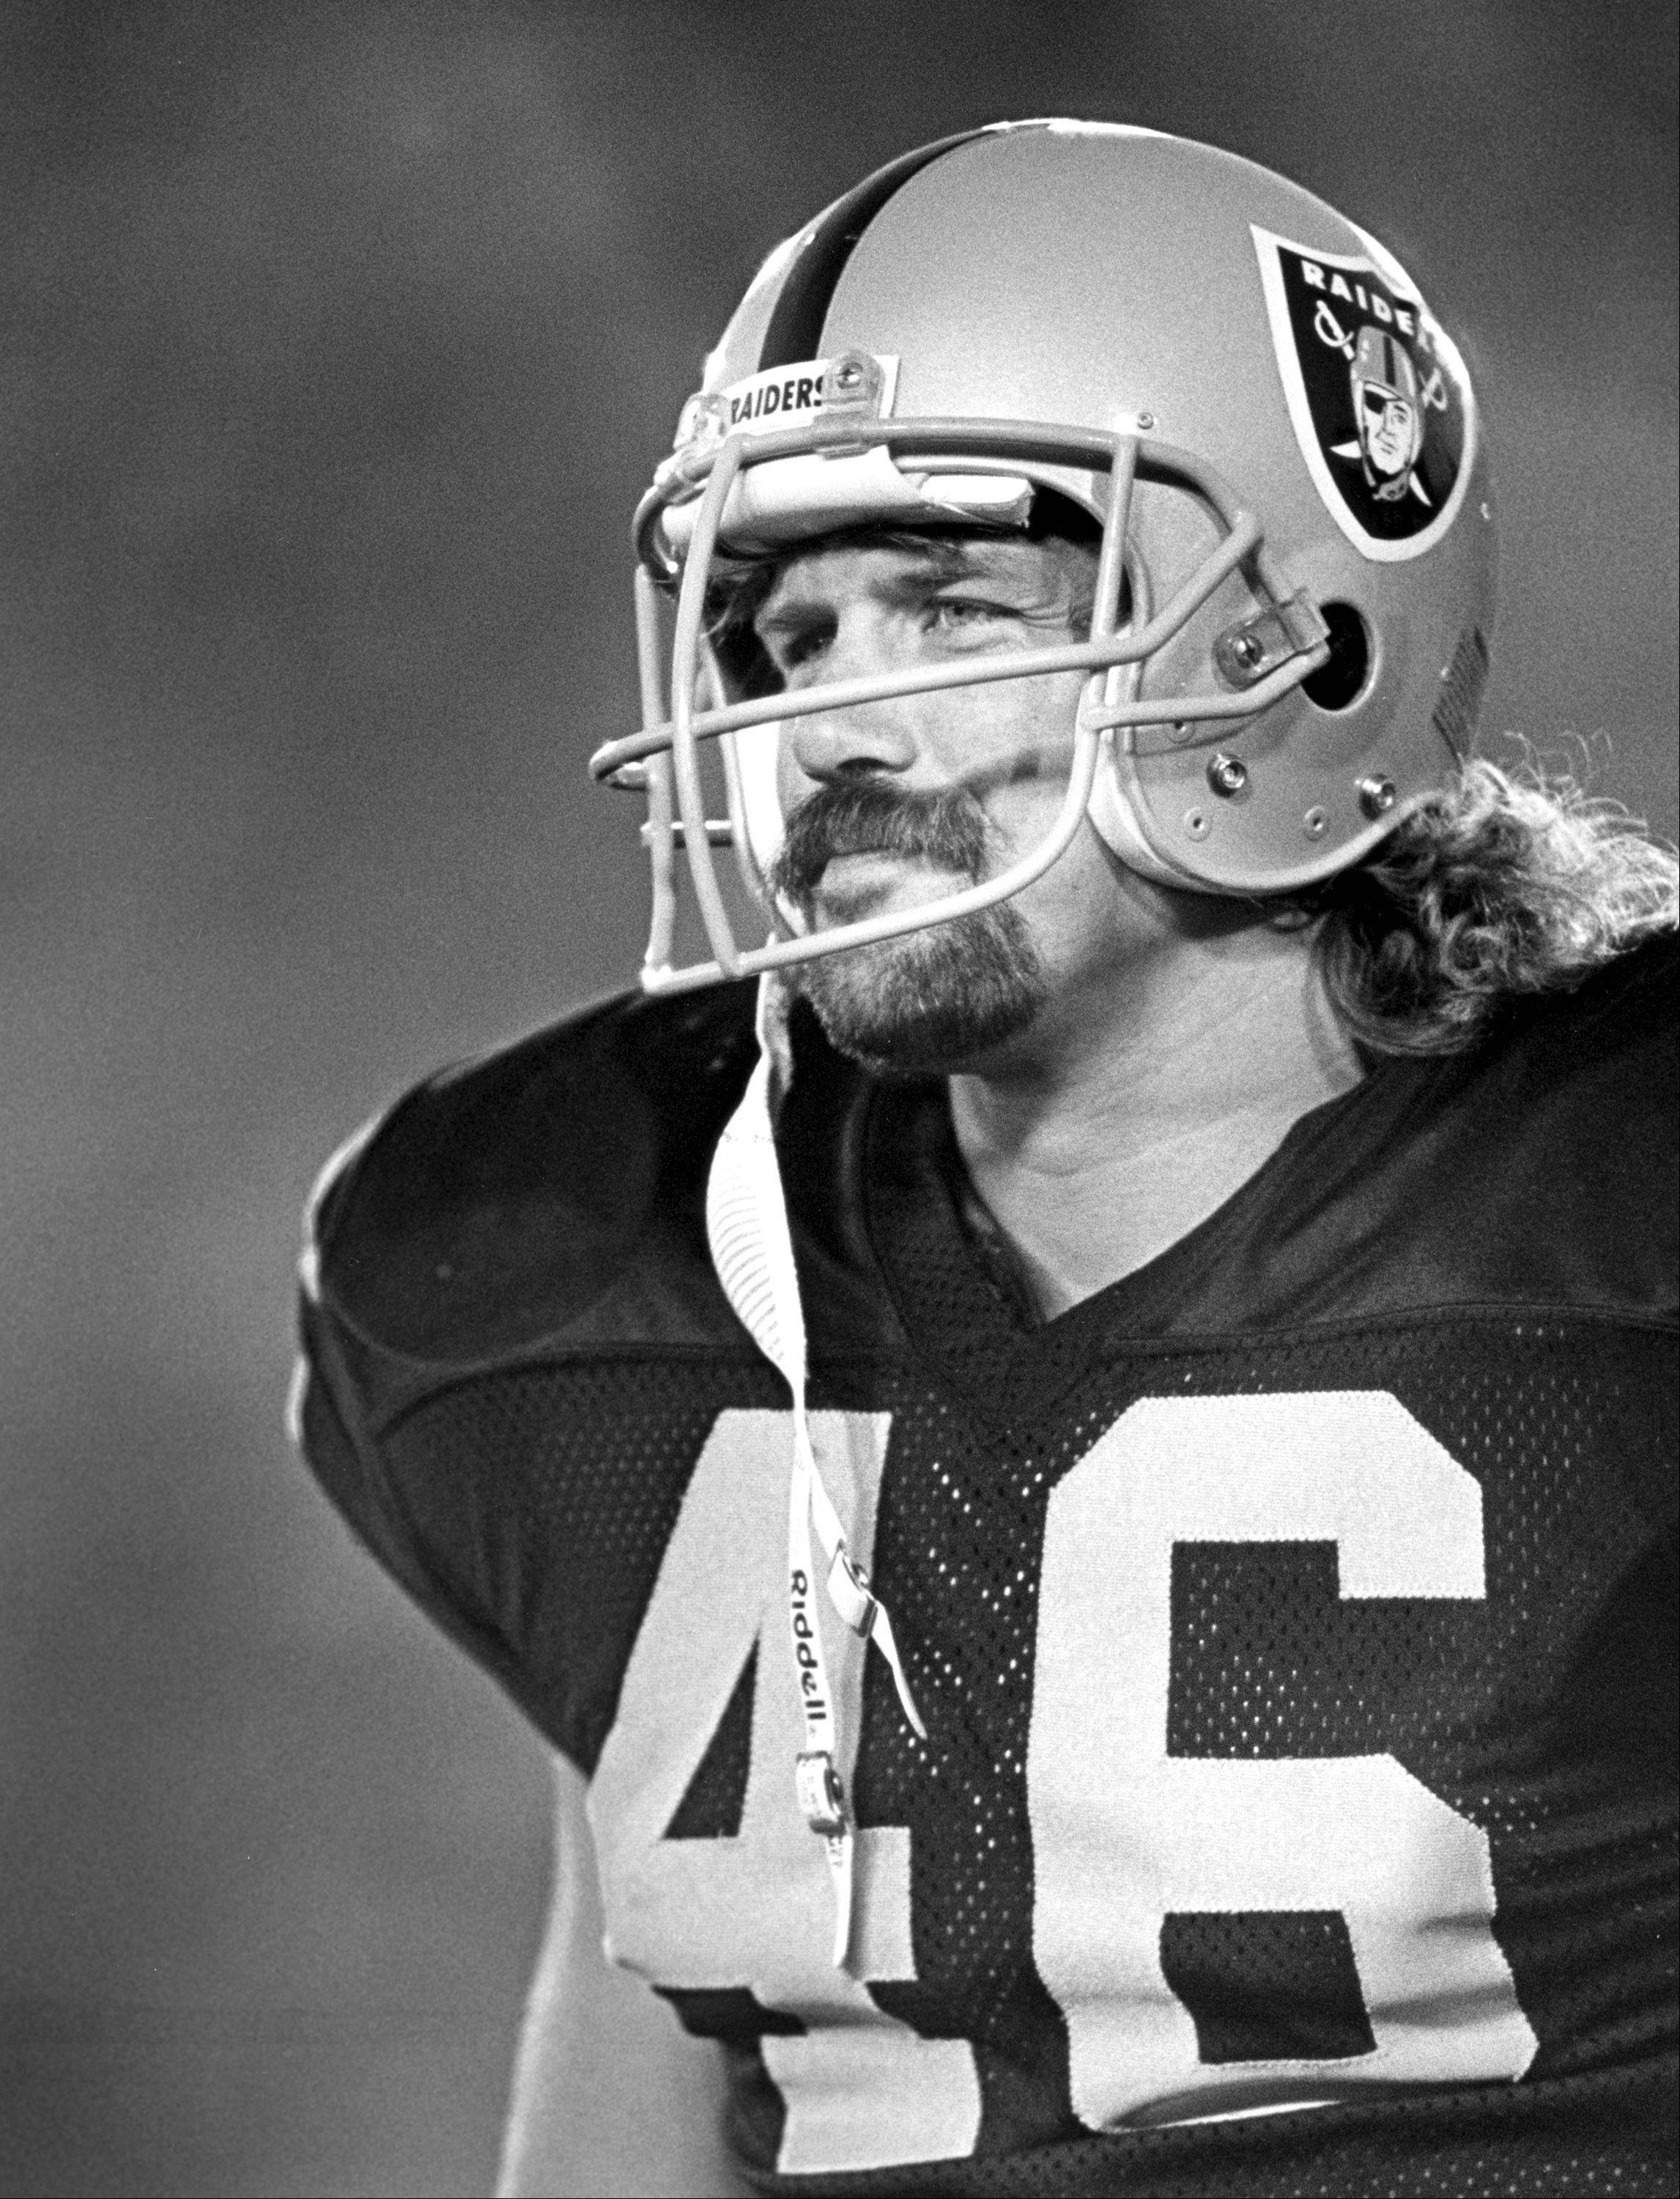 Former Los Angeles Raiders tight end Todd Christensen, shown here during a preseason football game against the San Francisco 49ers in 1987, died from complications during liver transplant surgery. He was 57.